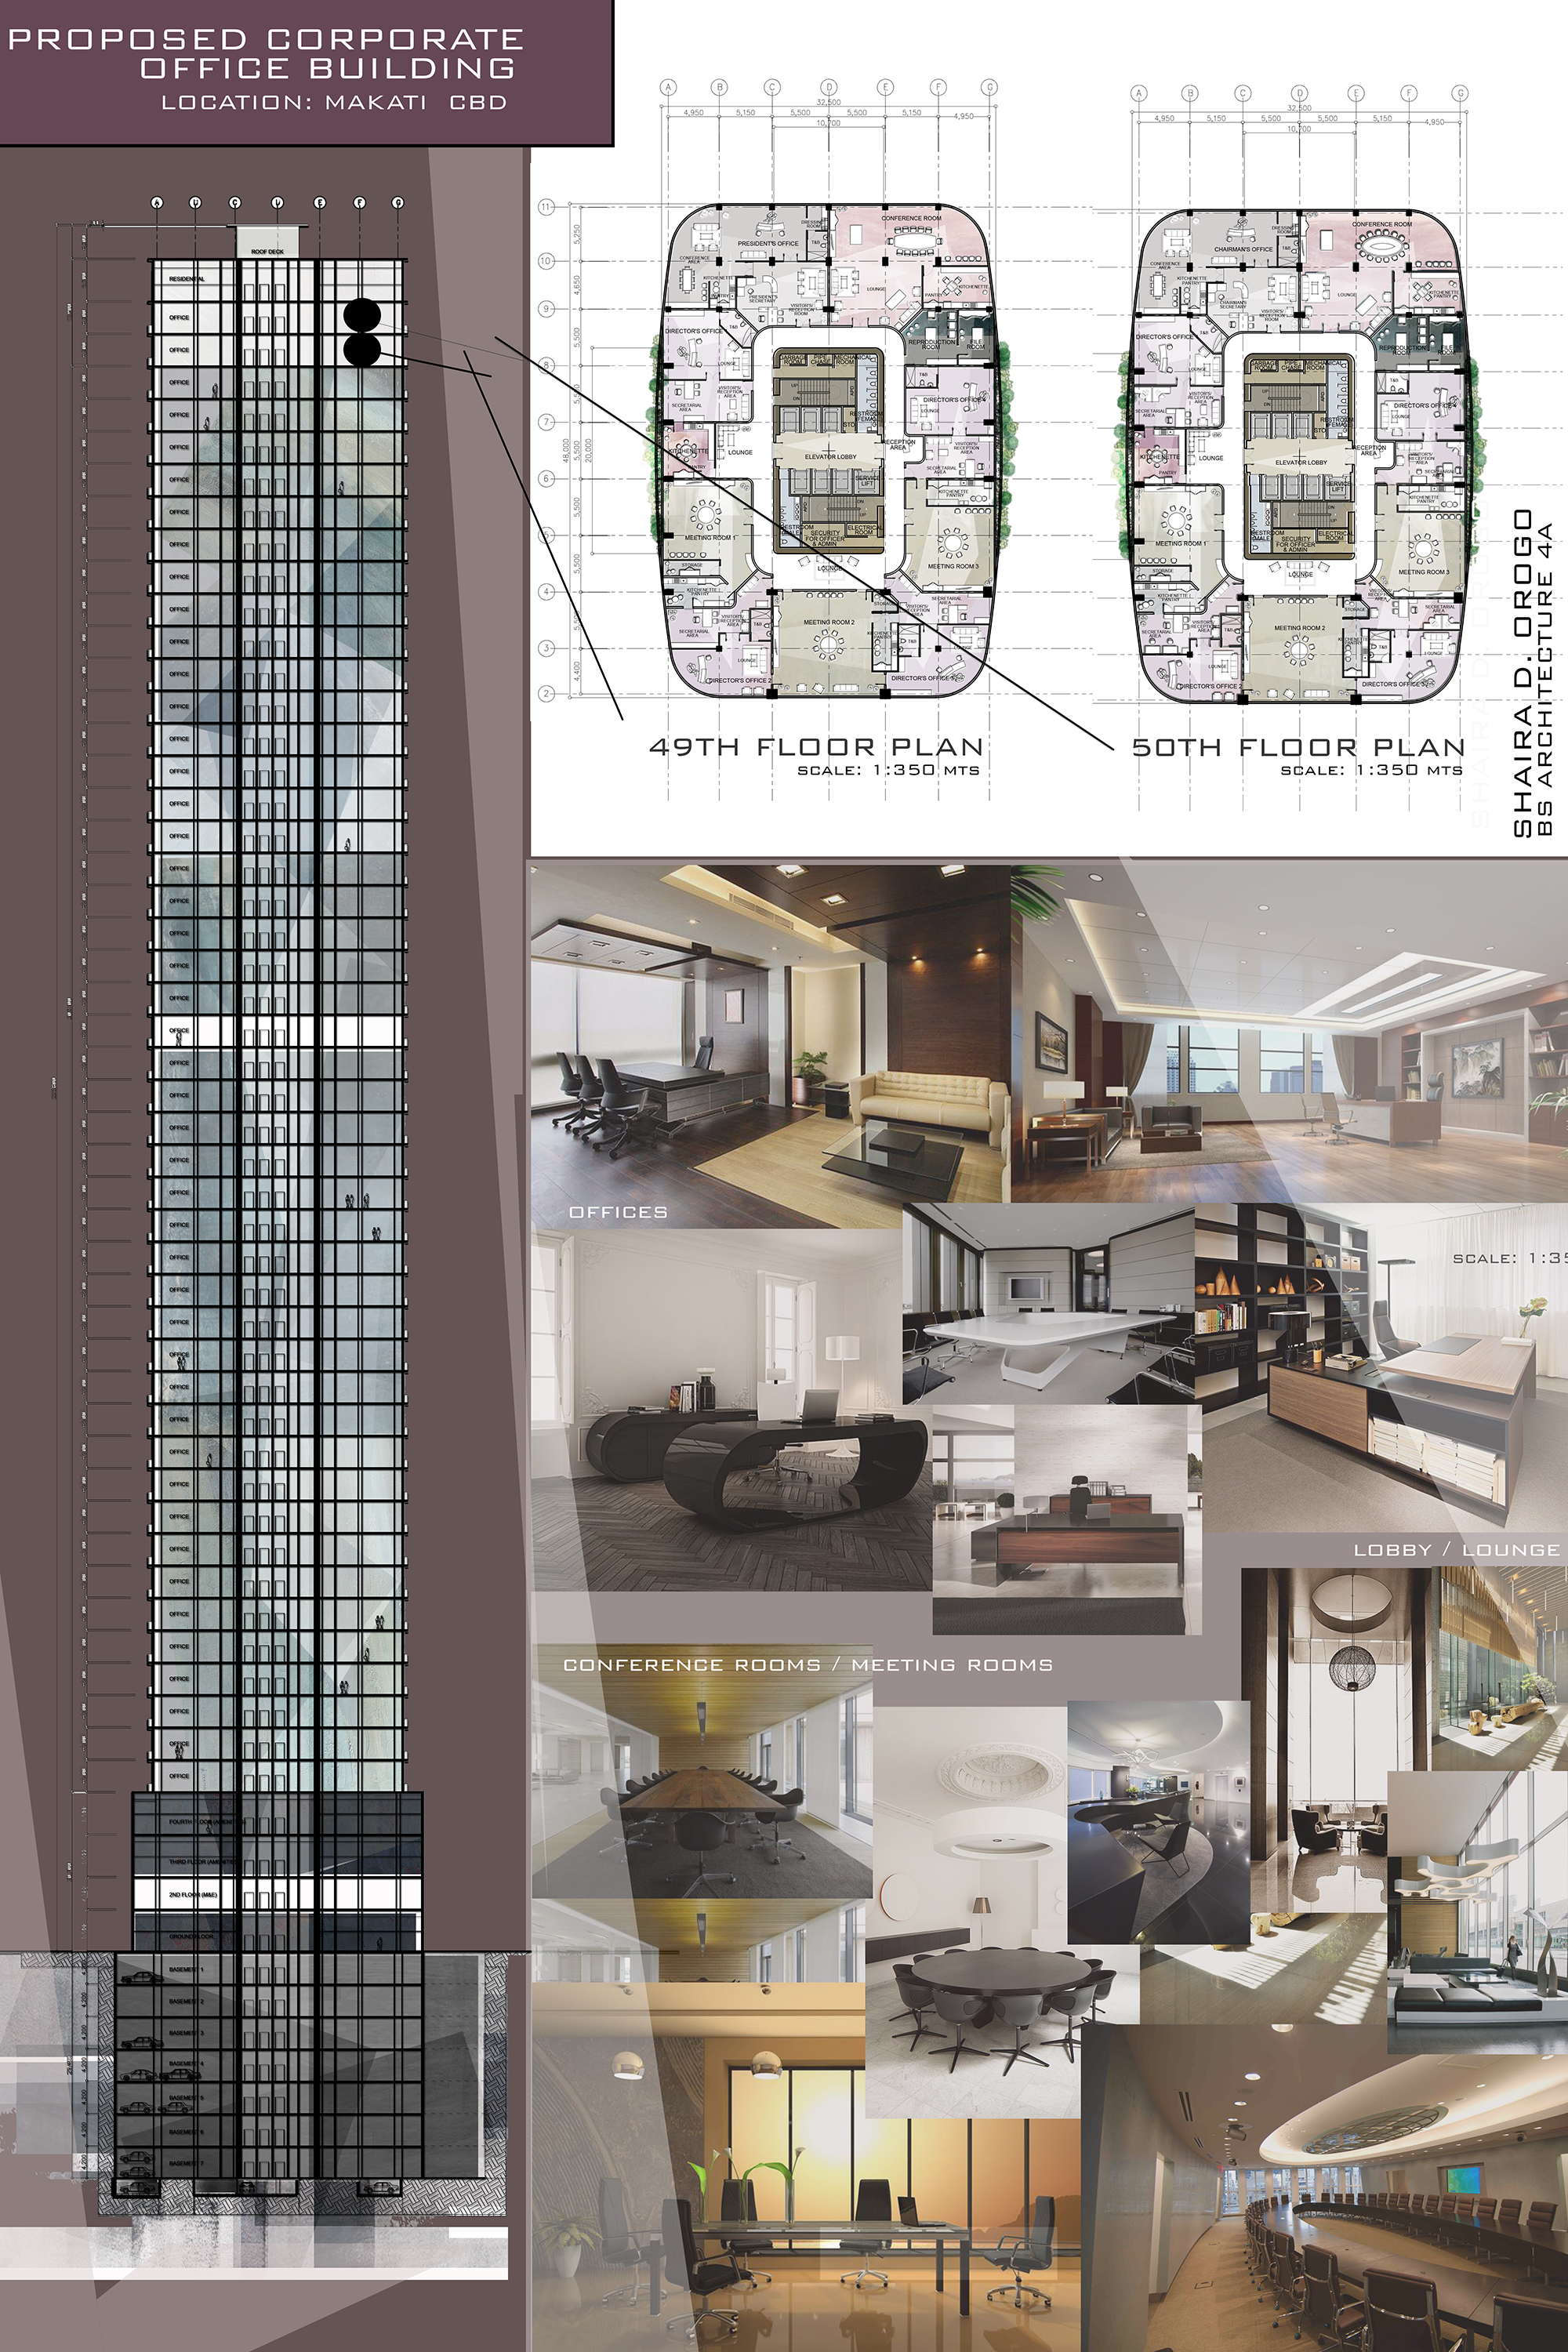 Design 8 proposed corporate office building high rise for Construction architect